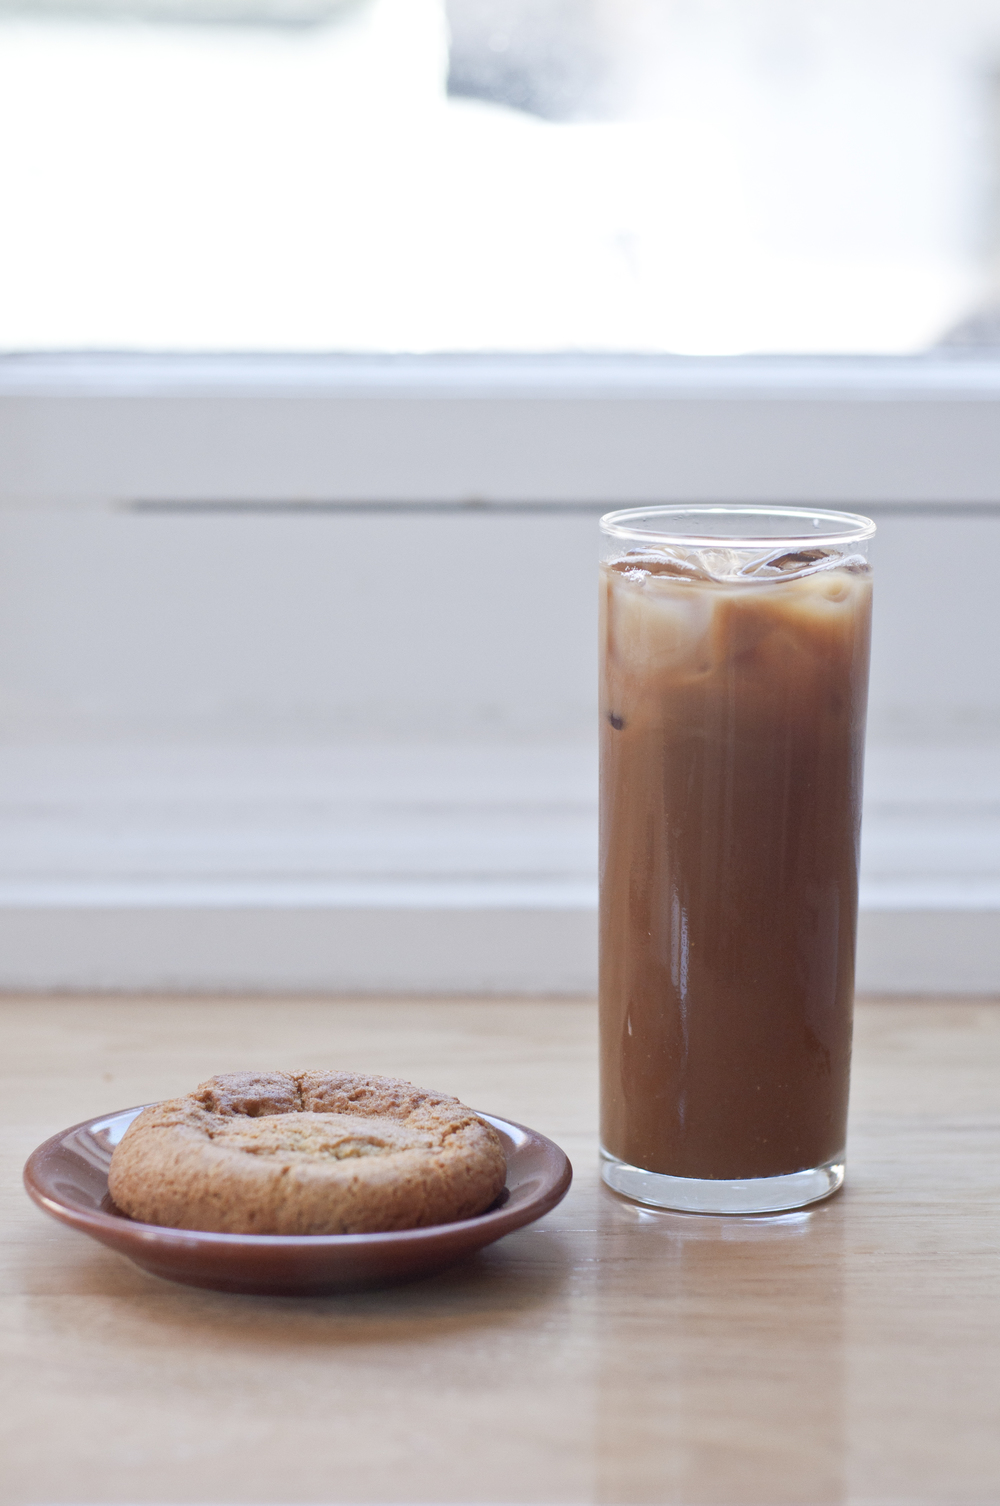 Try their snickerdoodle cookie with your coffee.